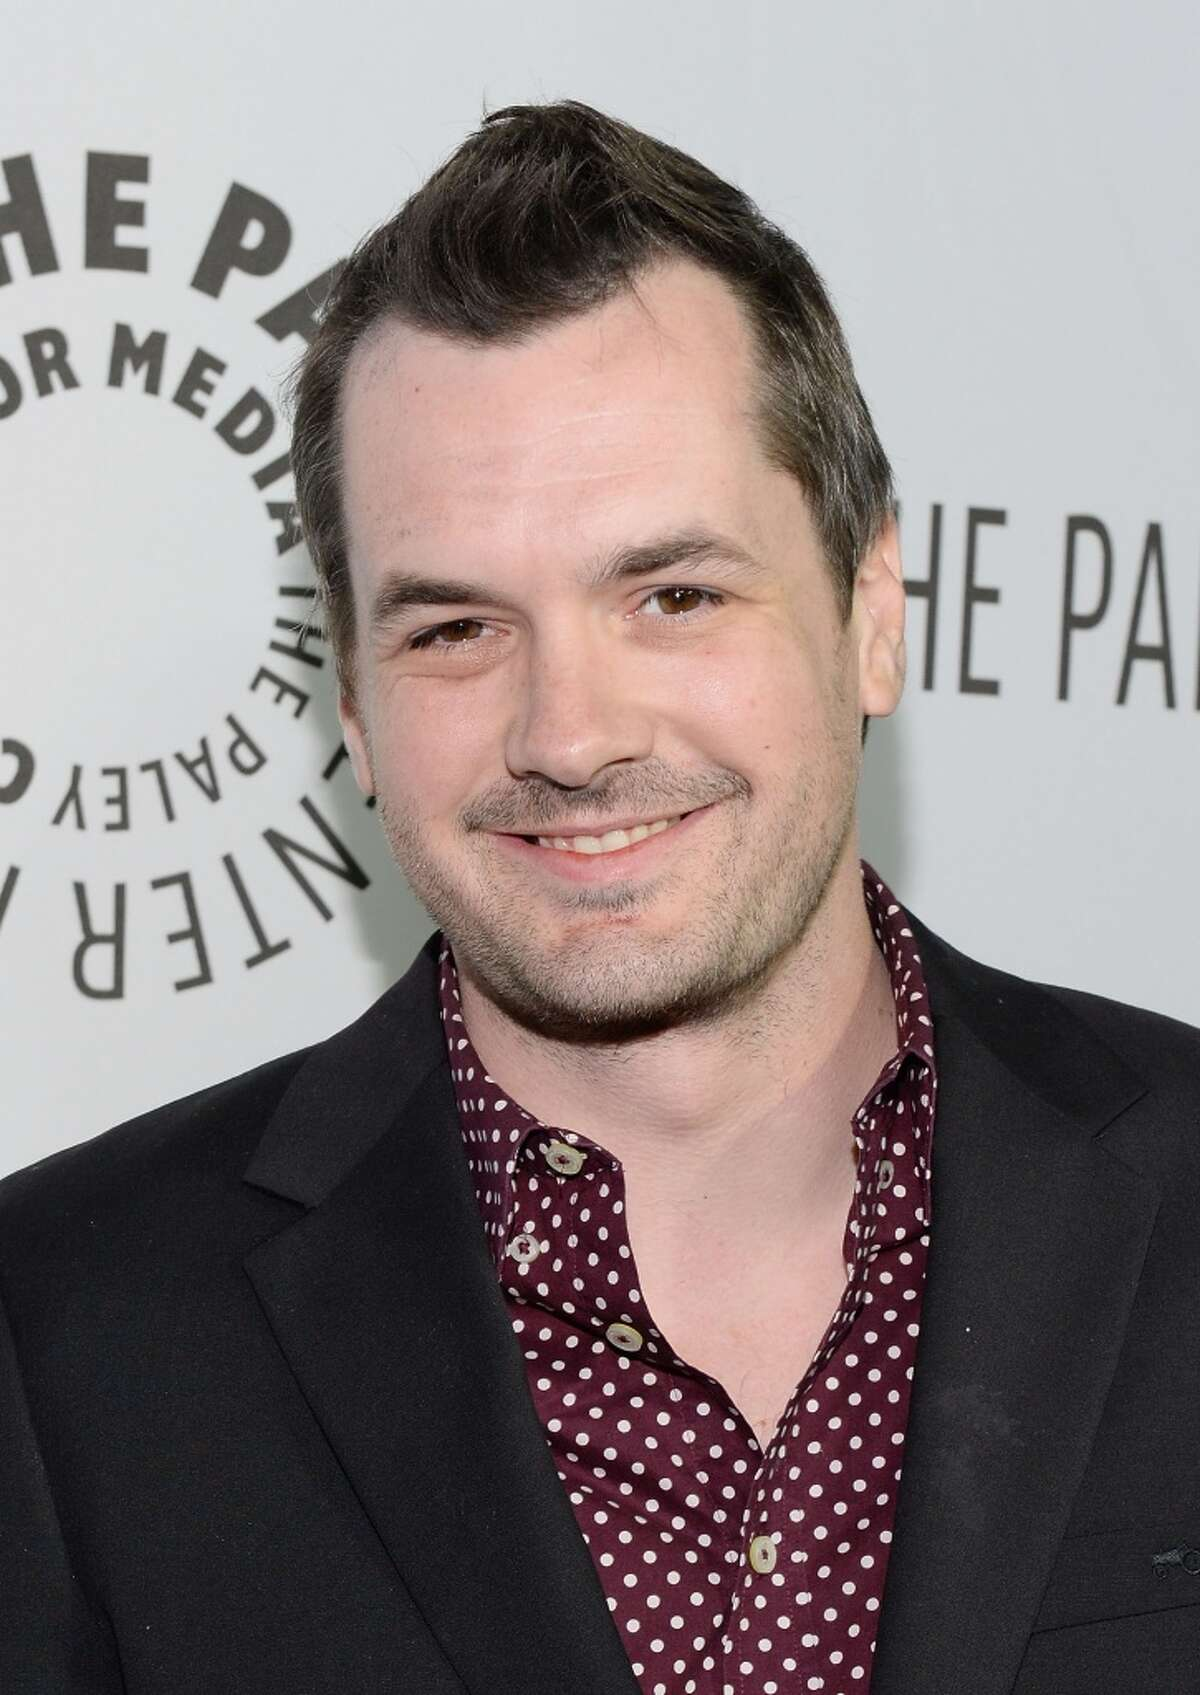 Jim Jeffries plays Cullen Performance Hall on March 31.